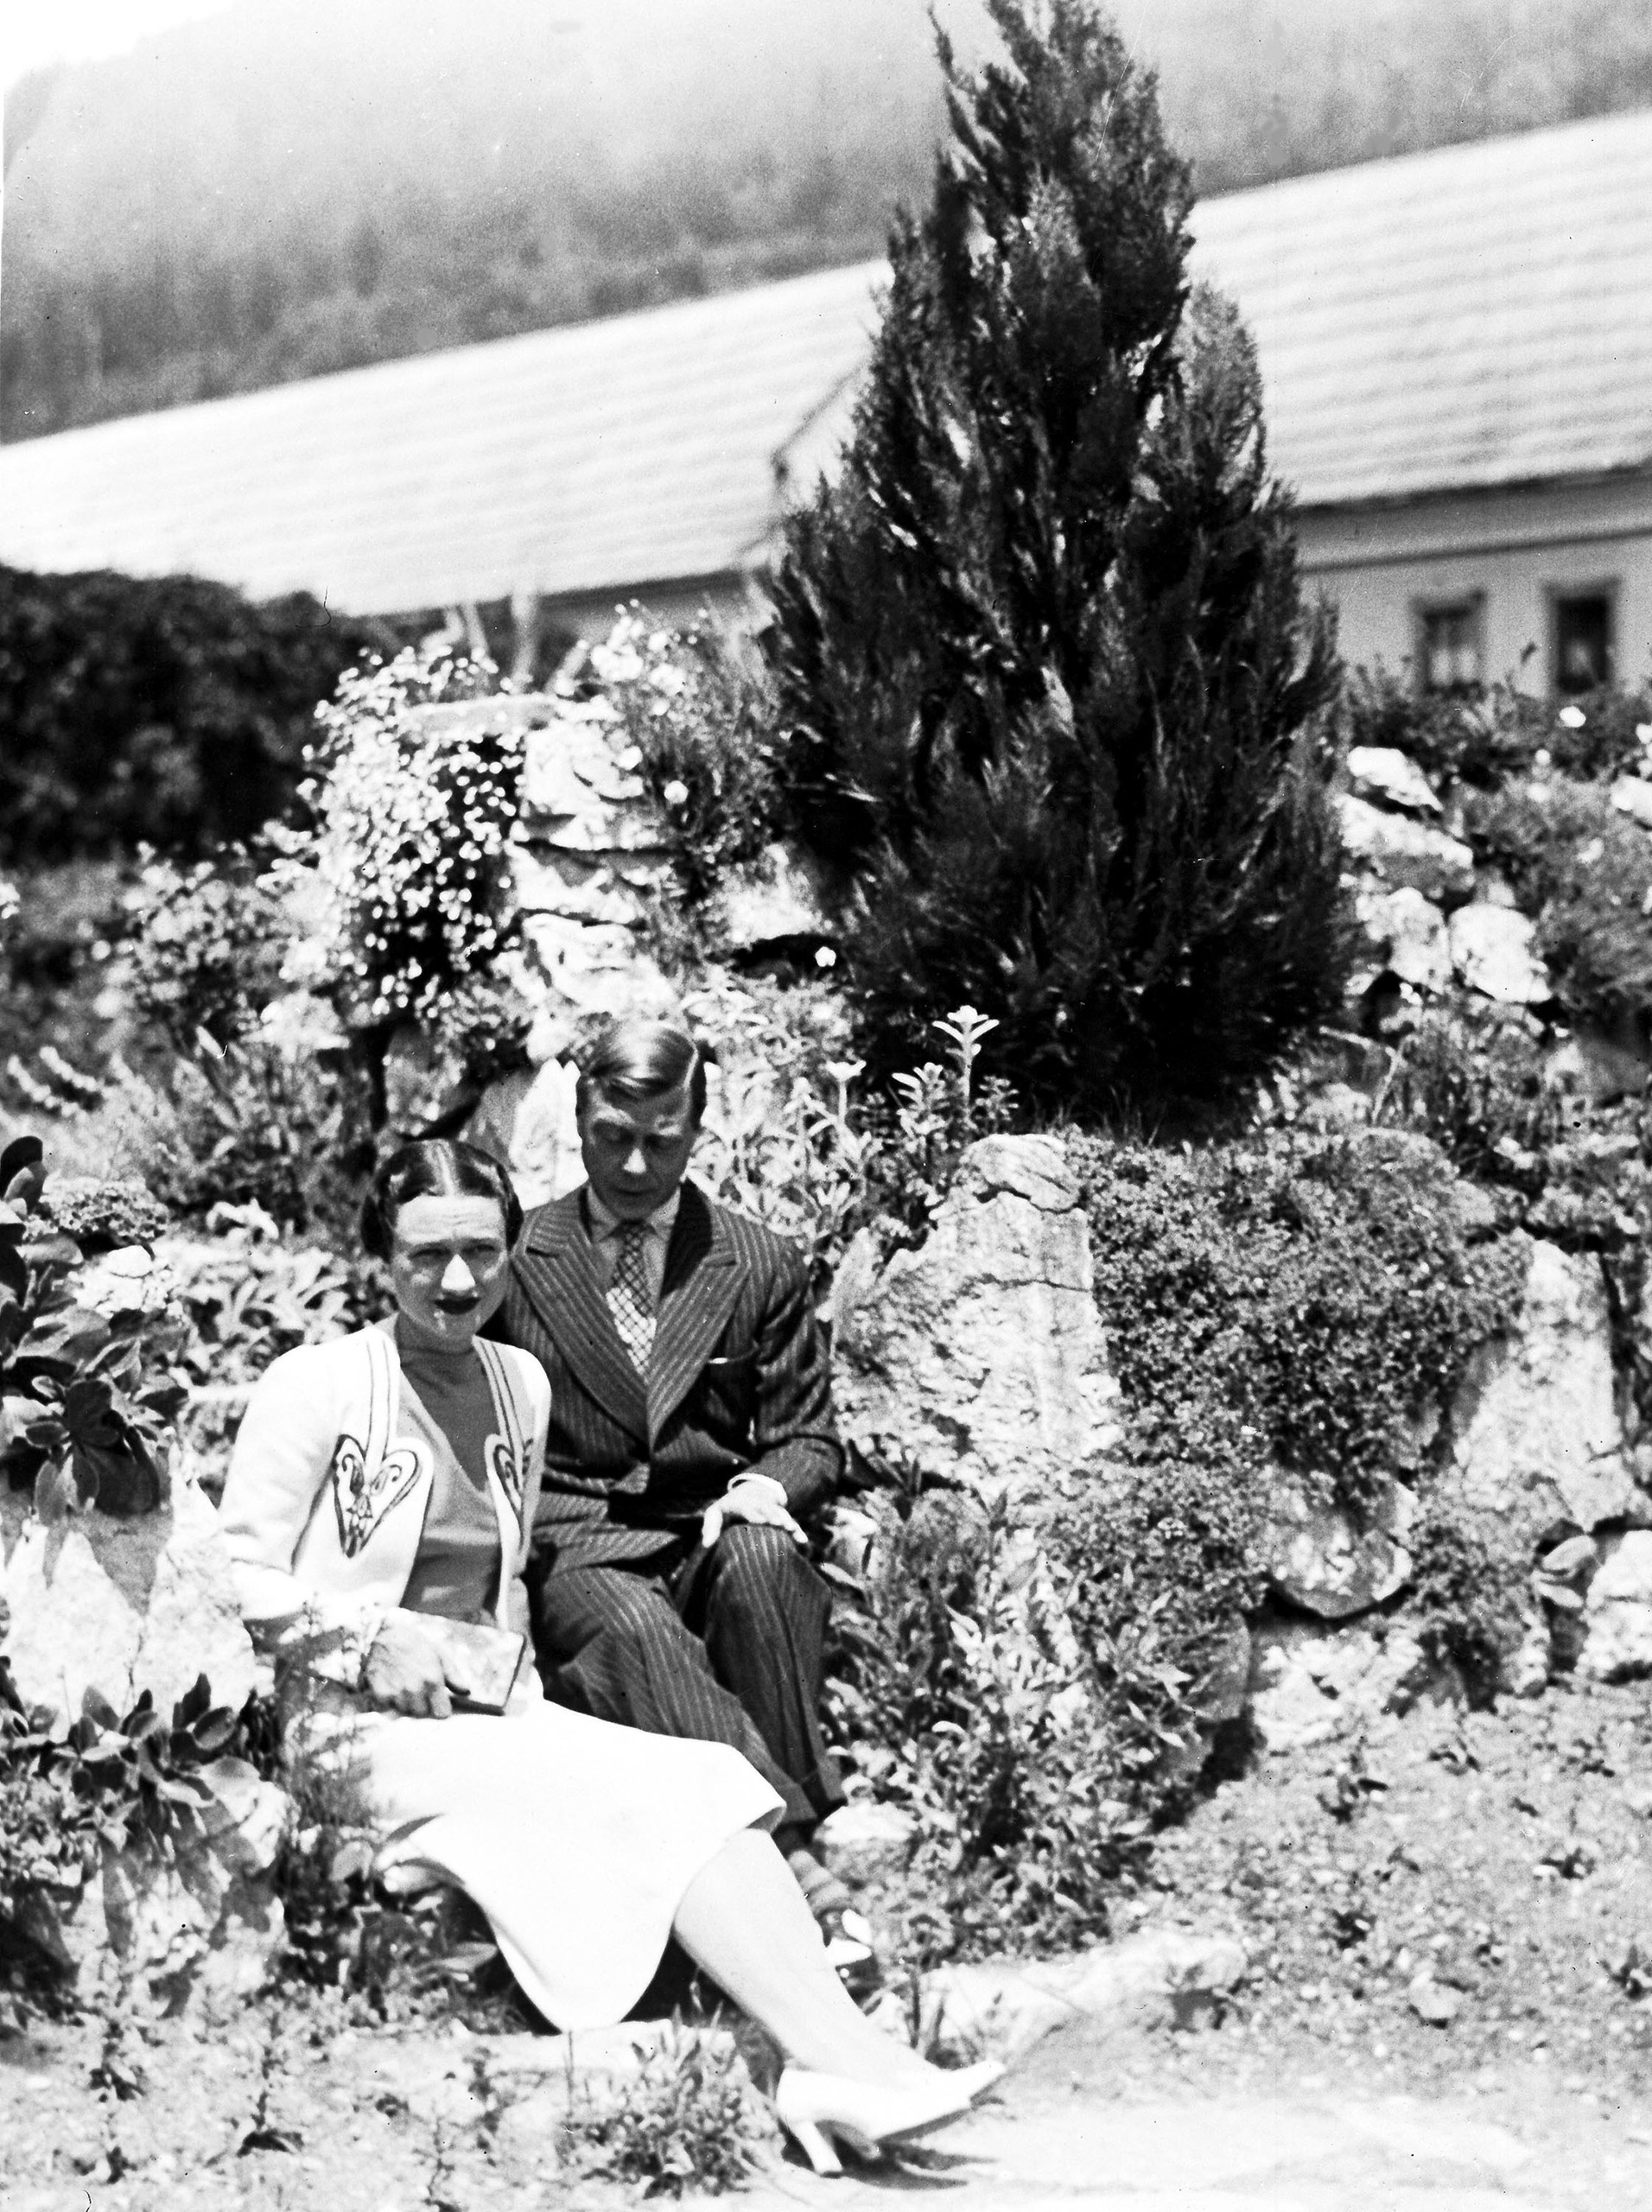 The Duke and Duchess of Windsor, on their honeymoon, in the grounds of Wasserleonburg Castle, Austria, June 9, 1937.